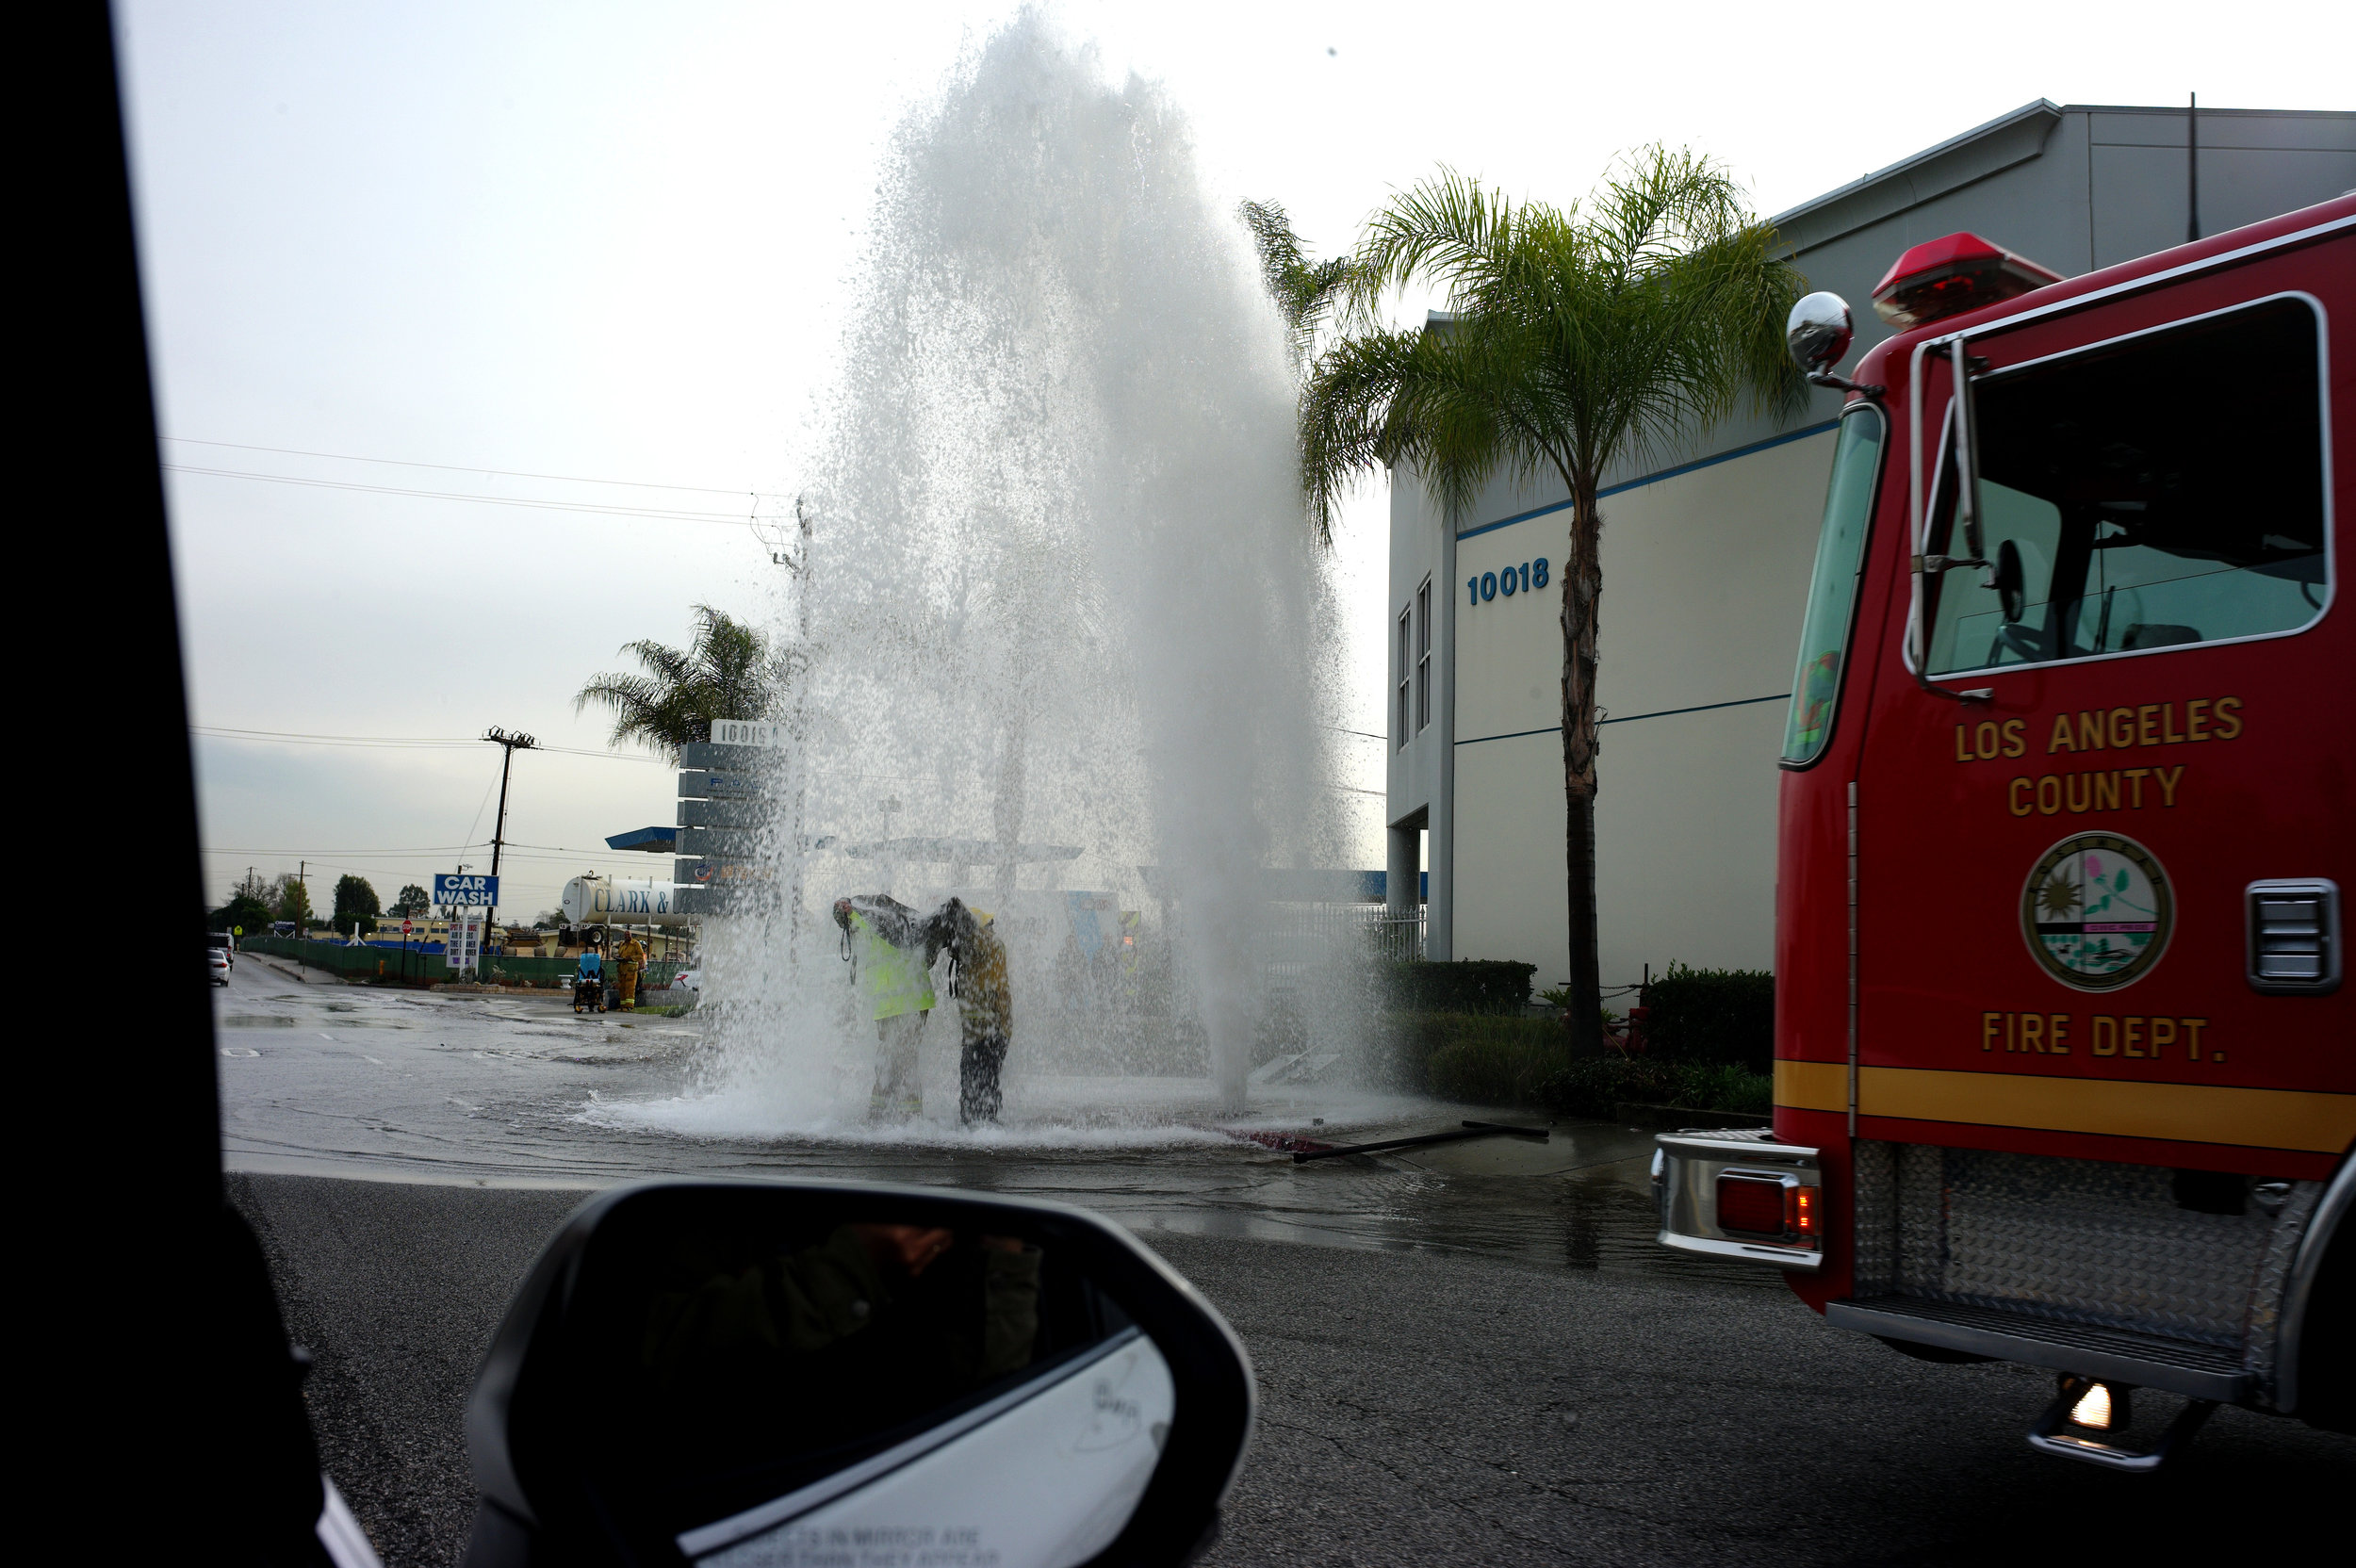 Firefighters try to turn off a broken water main on Lower Azusa road in El Monte on Dec. 21, 2018.